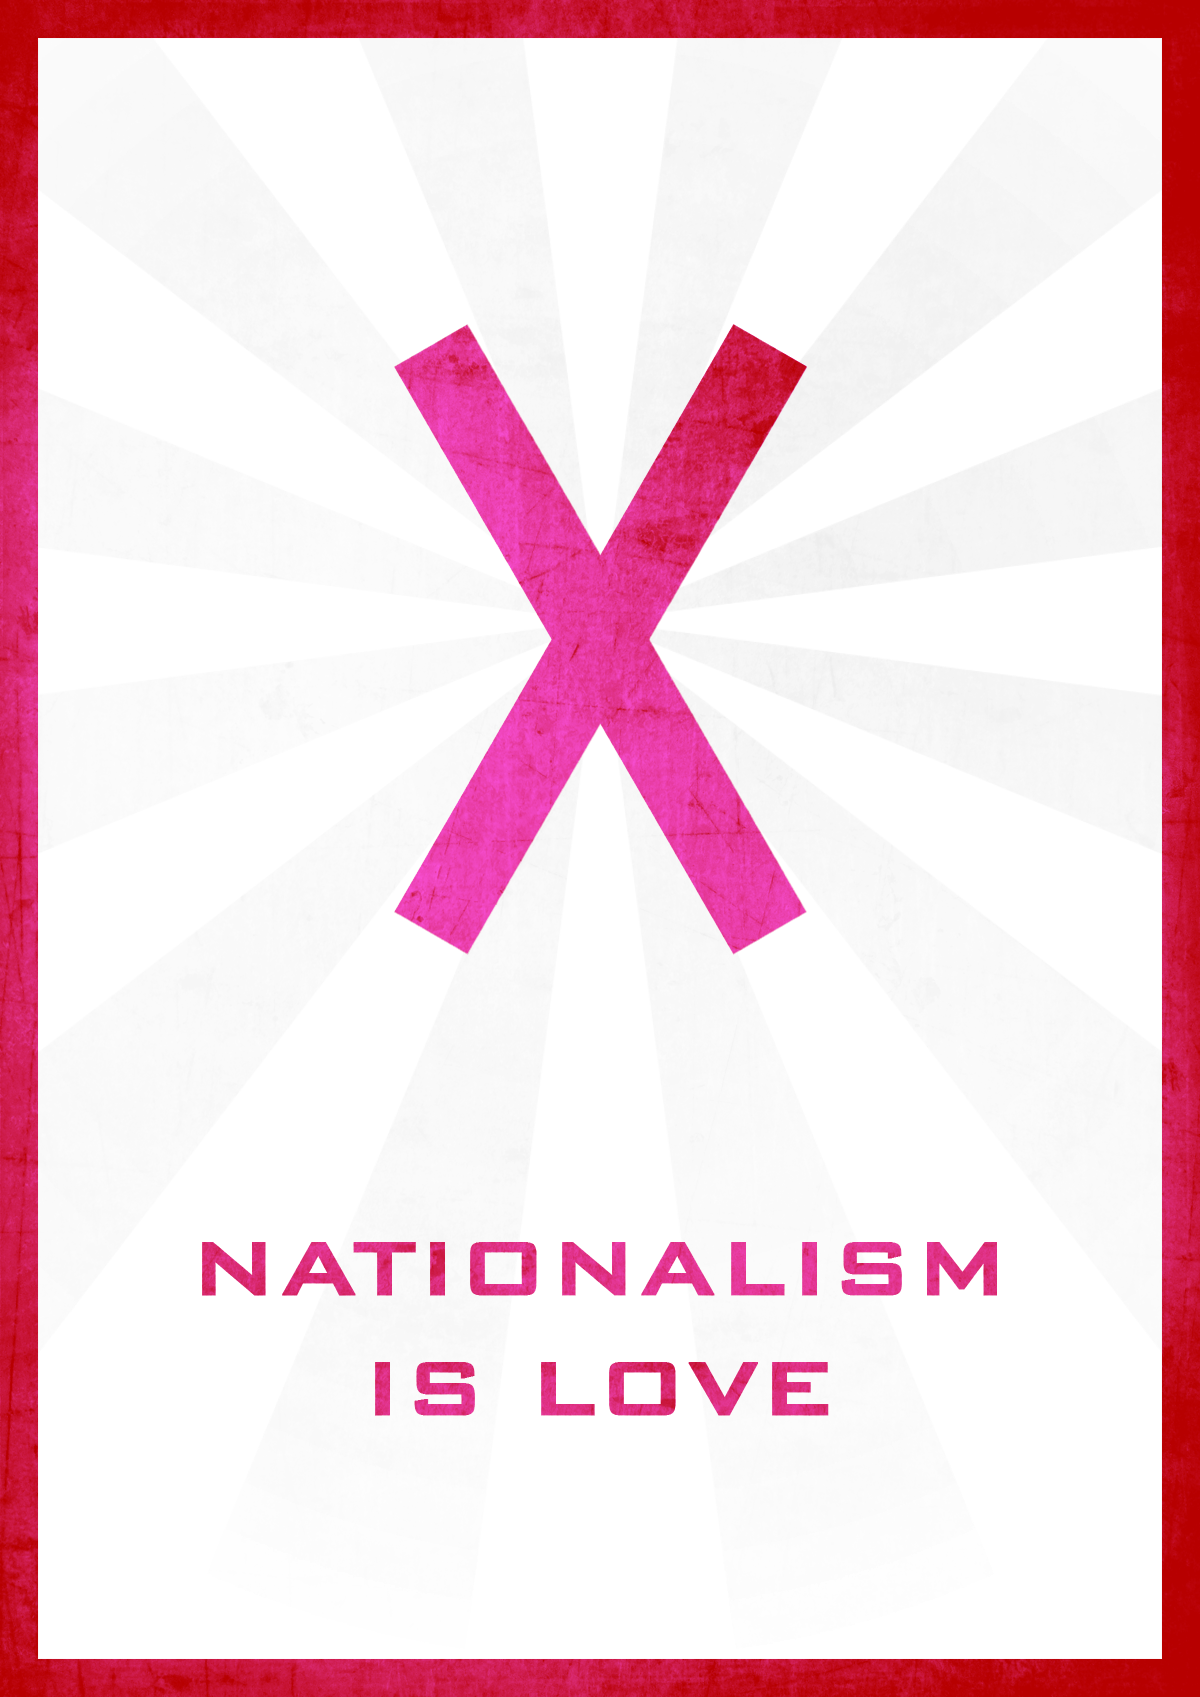 Nationalism is Love by Luckmann on DeviantArt